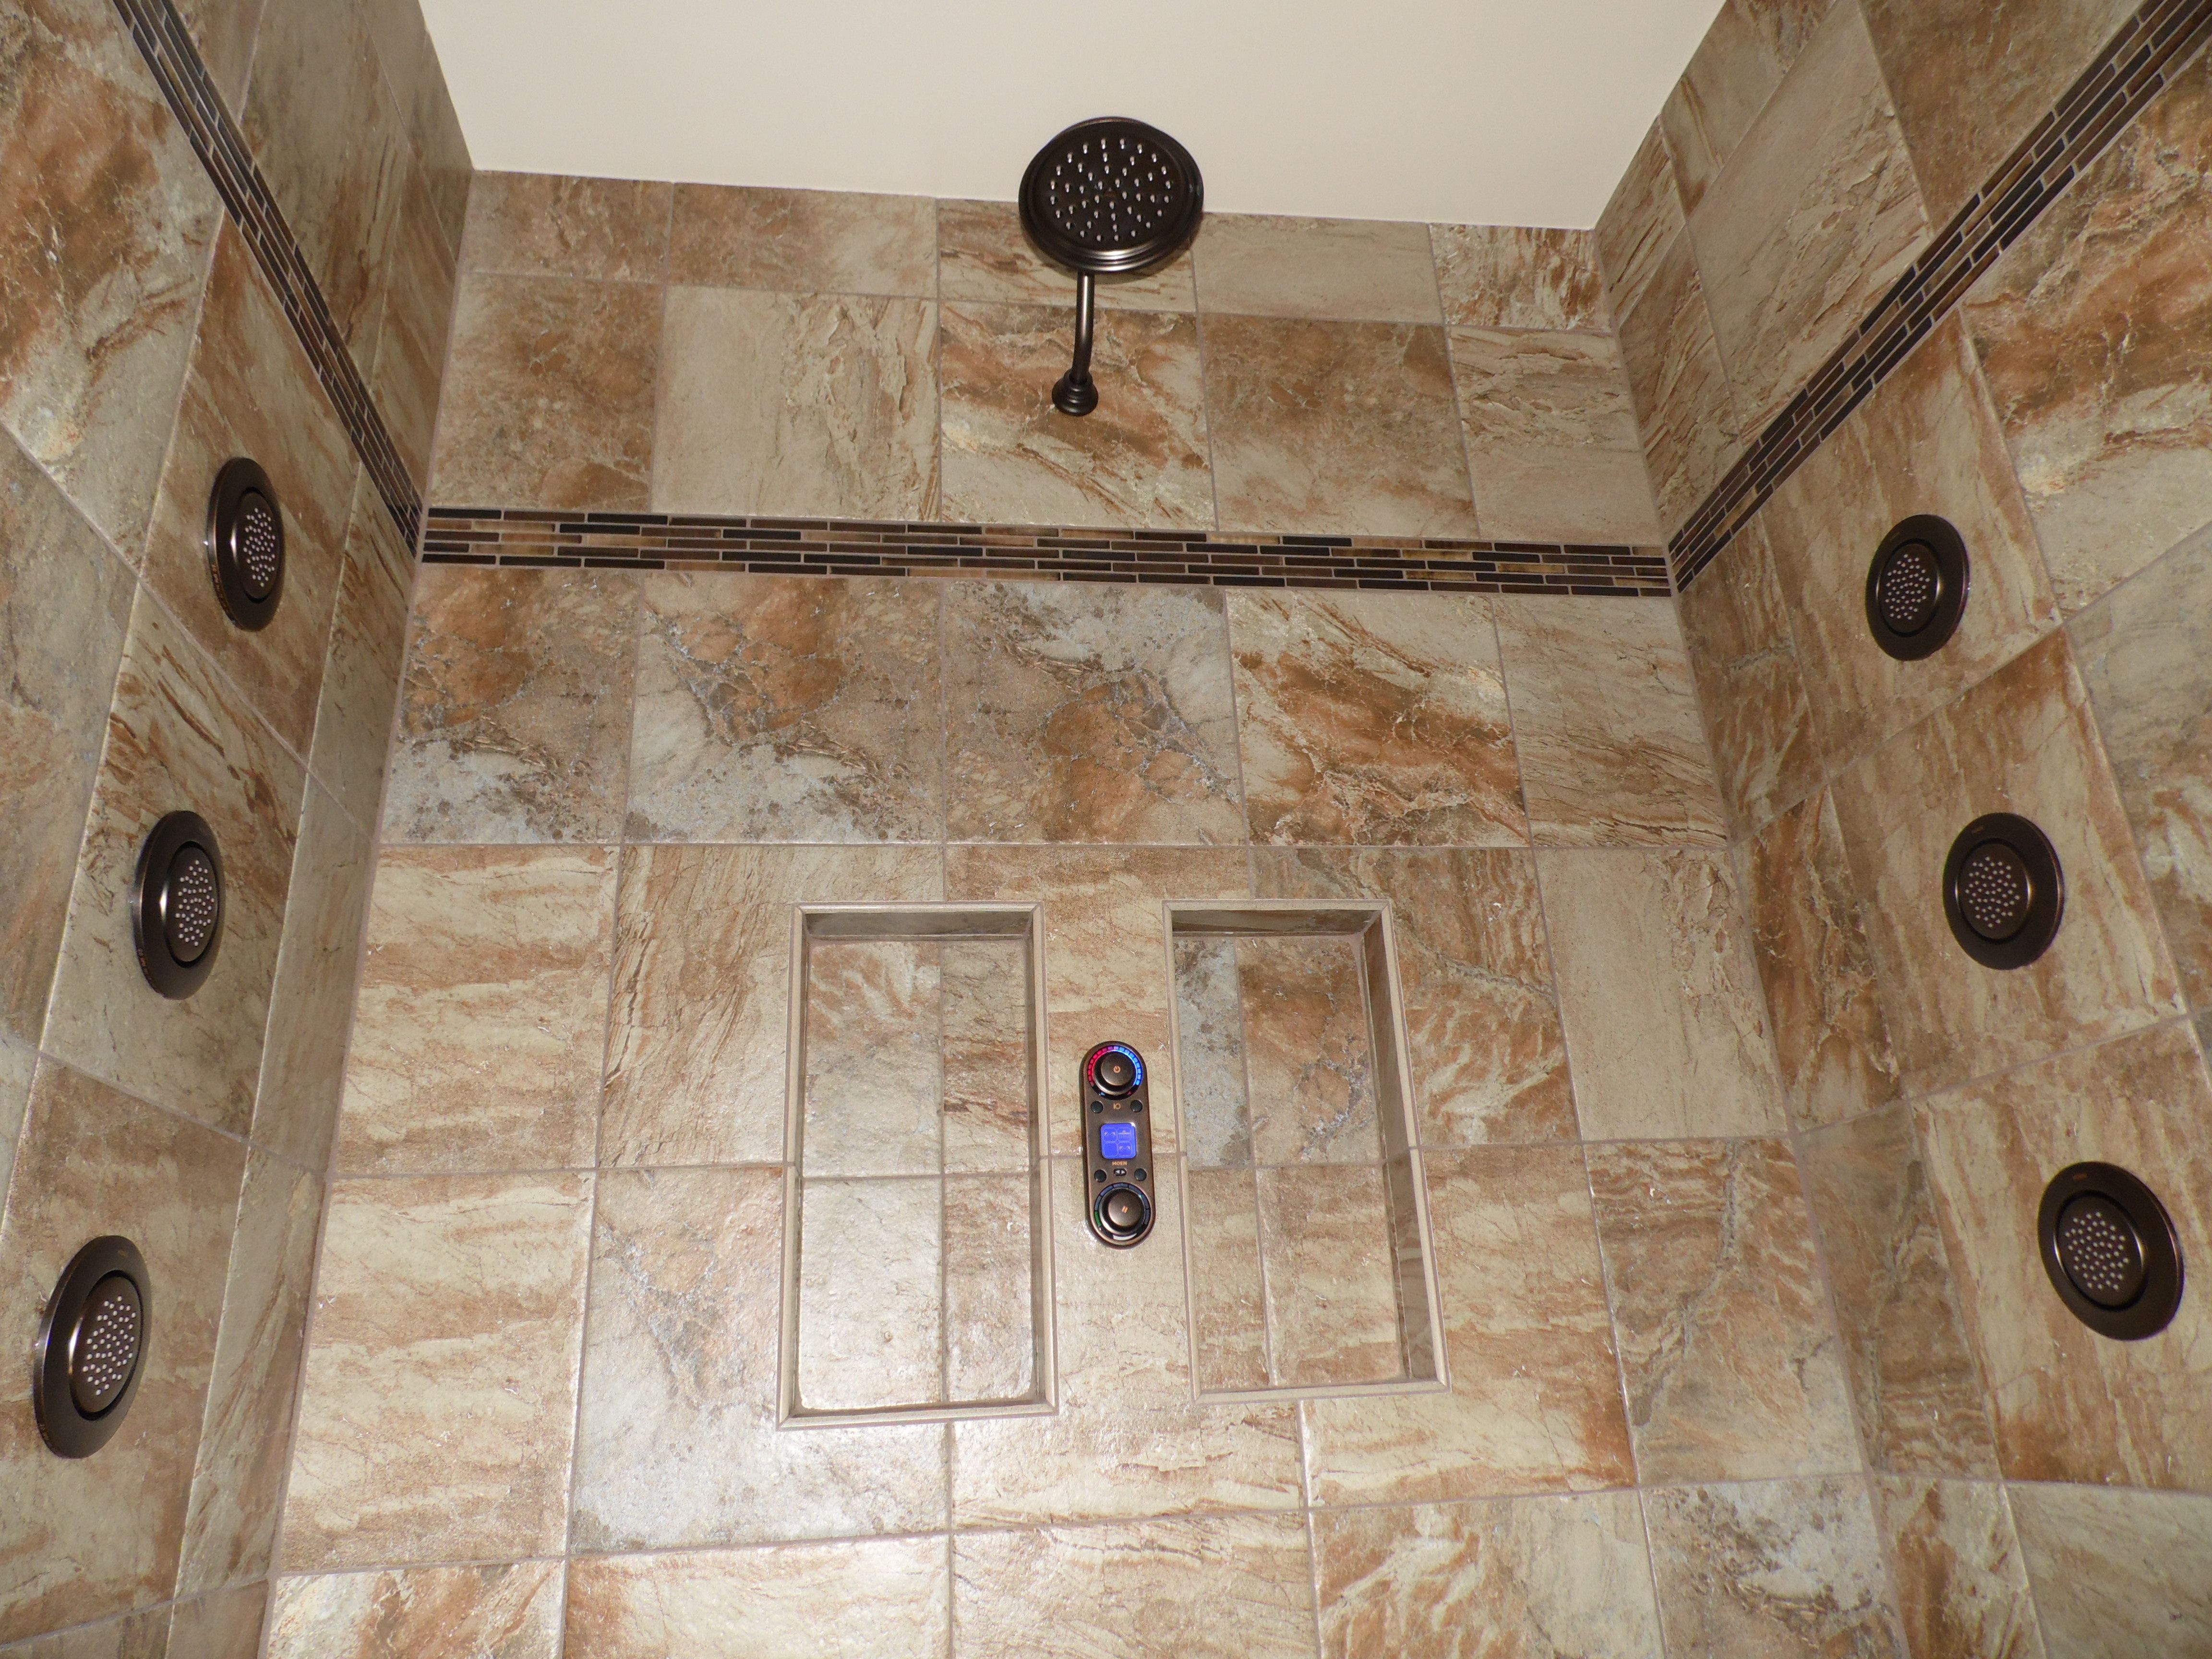 Body Spray Shower Design | Home Decor & Renovation Ideas